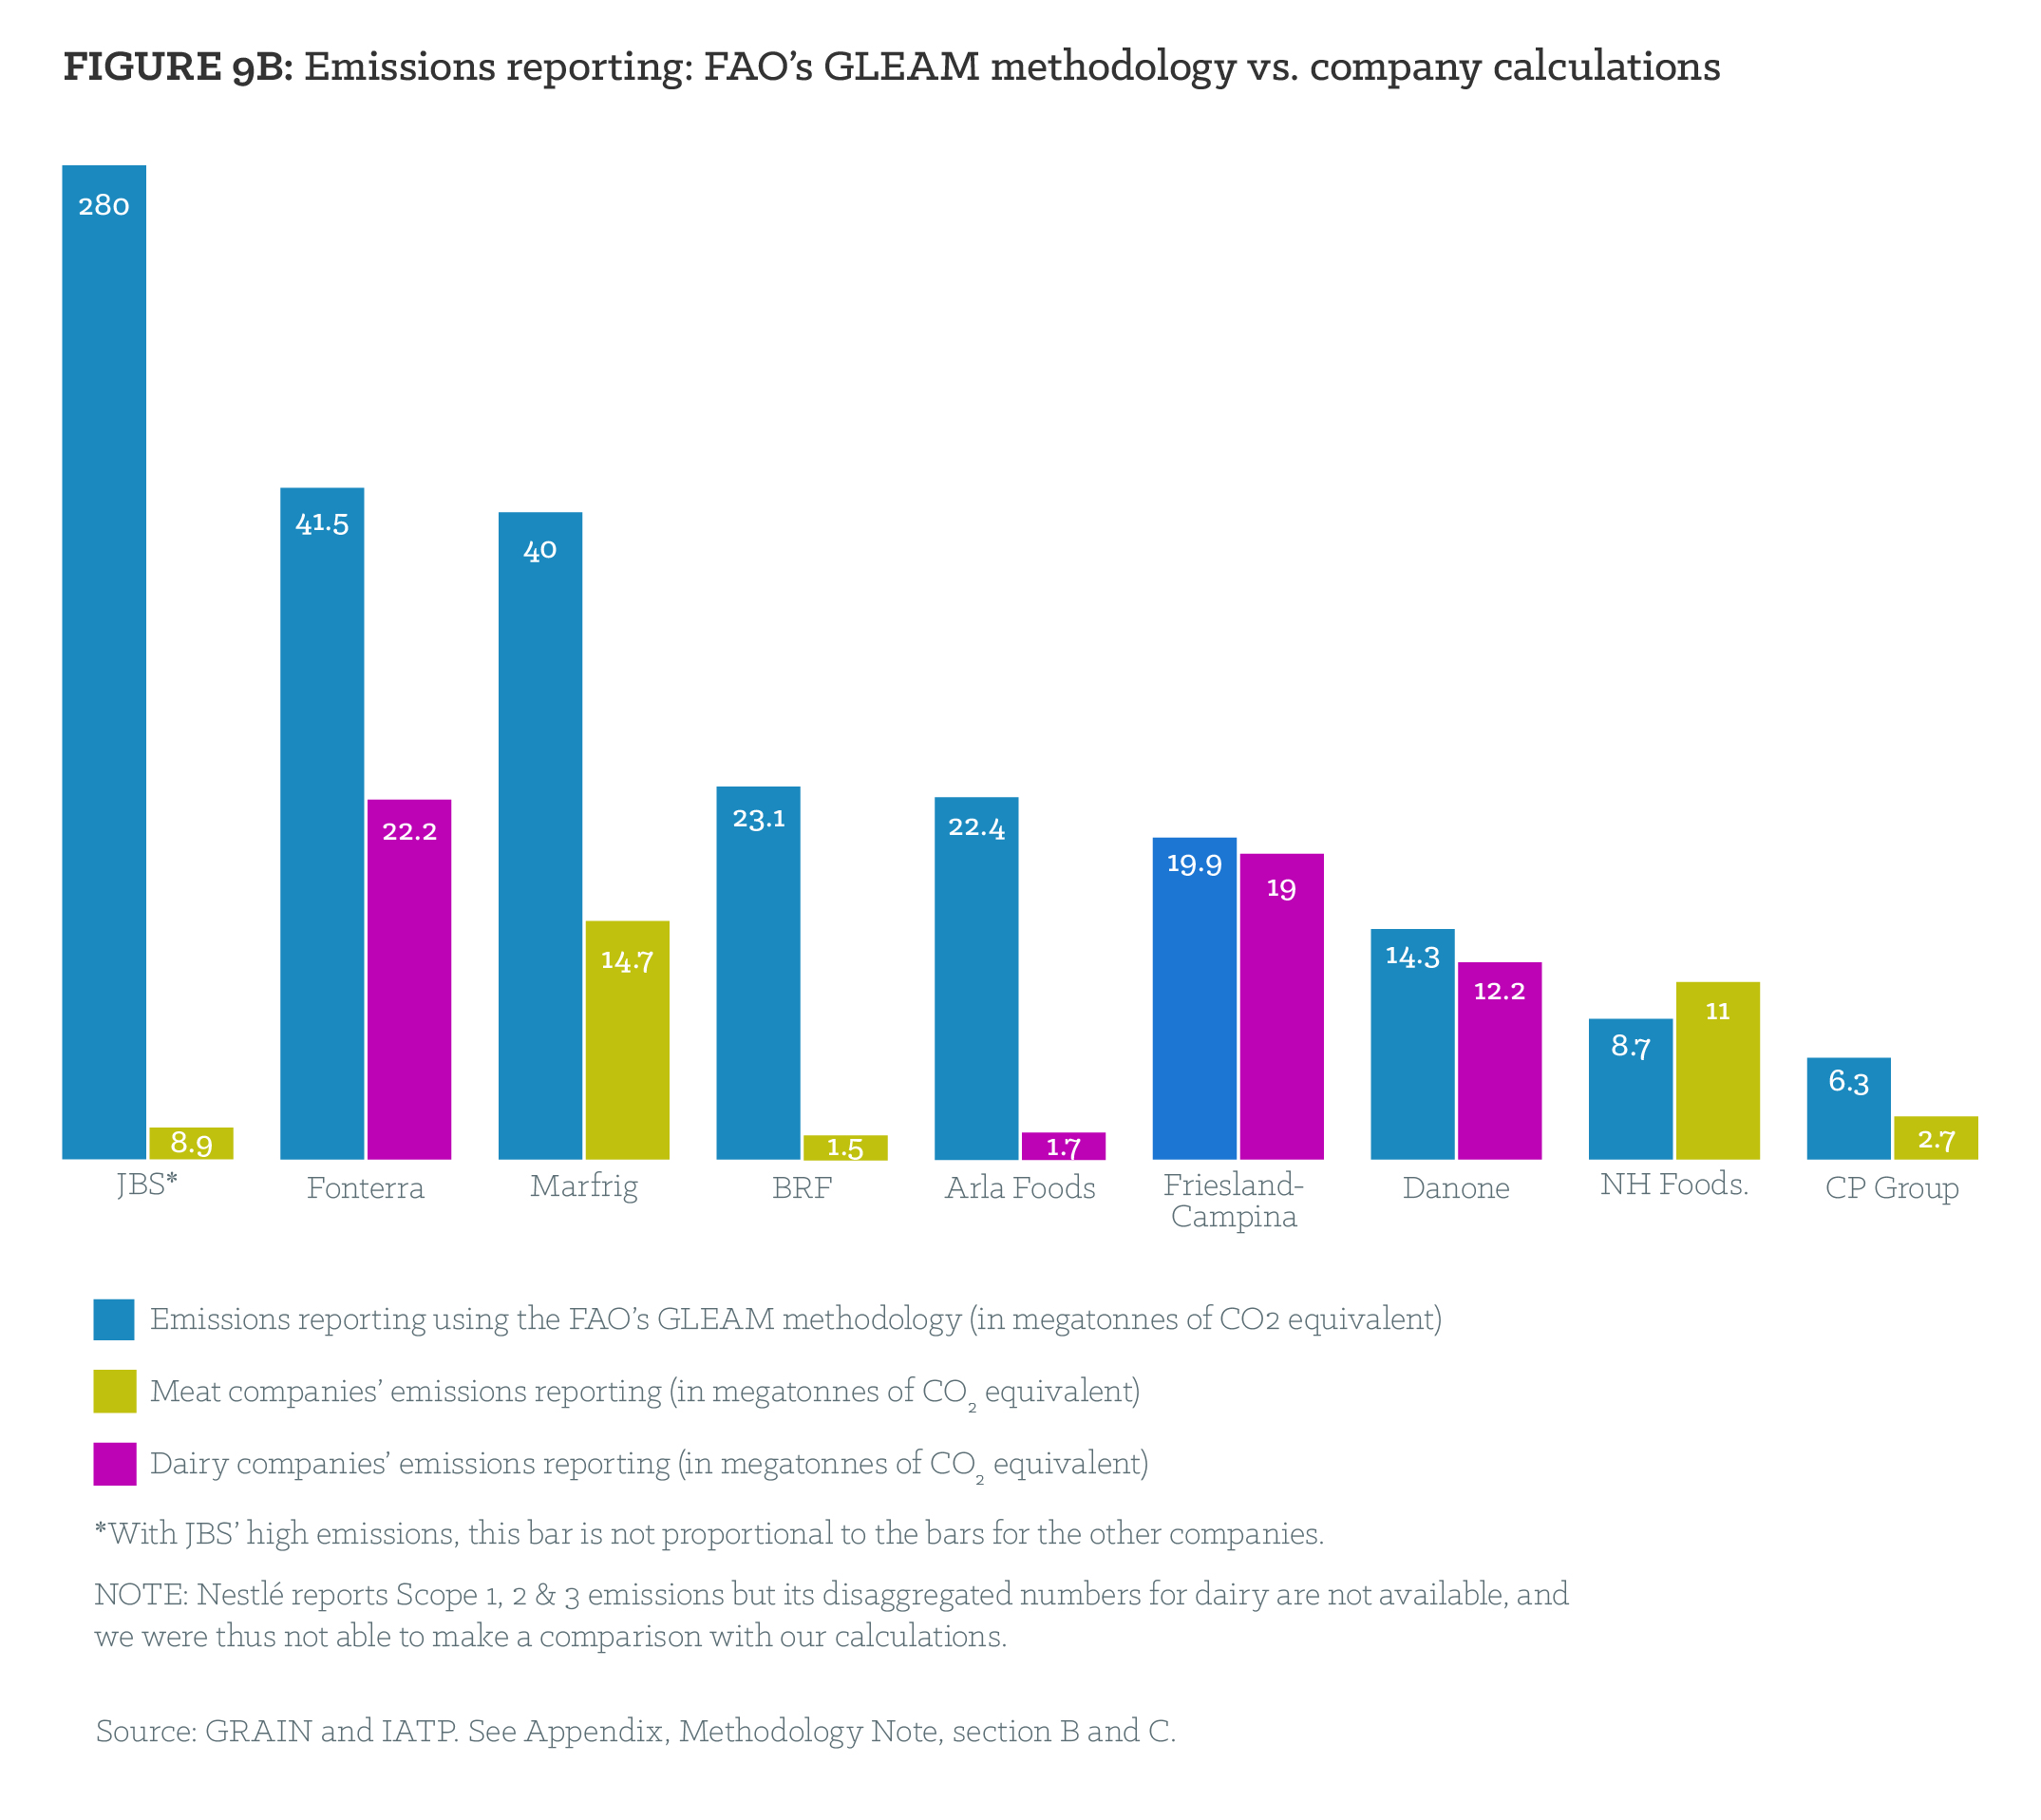 Figure 9B: Emissions reporting: FAO's GLEAM methodology vs. company's calculations